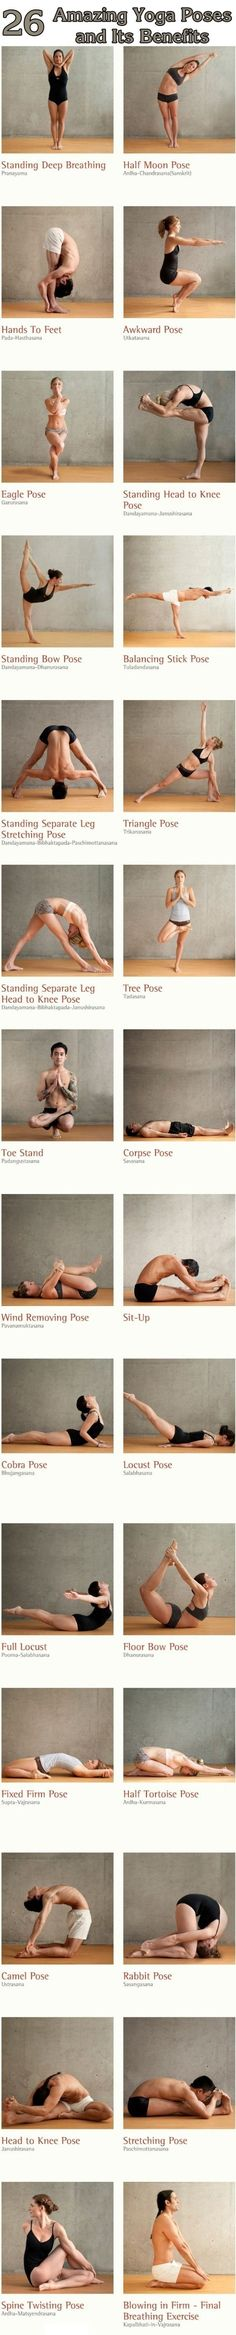 Amazing yoga poses and its benefits [ SkinnyFoxDetox.com ] #yoga #skinny #health | Come to Clarkston Hot Yoga in Clarkston, MI for all of your Yoga and fitness needs! Feel free to call (248) 620-7101 or visit our website www.clarkstonhotyoga.com for more information about the classes we offer!